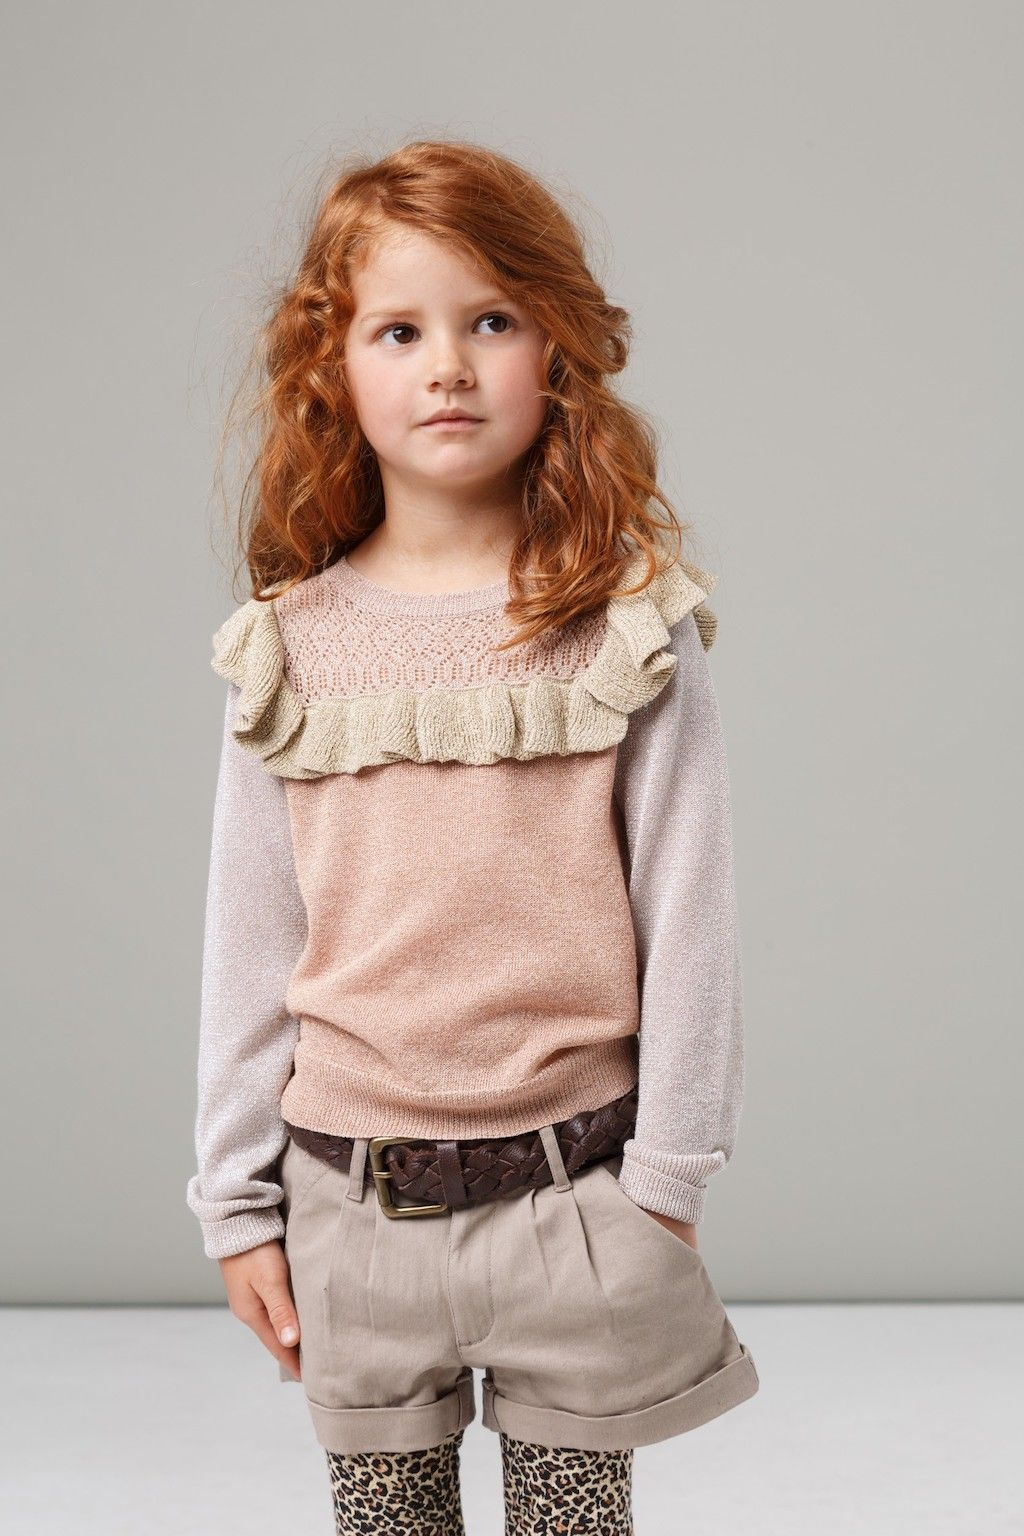 Marmar Copenhagen Is 10 Years Little Scandinavian Kids Fashion Cute Outfits Kids Branding